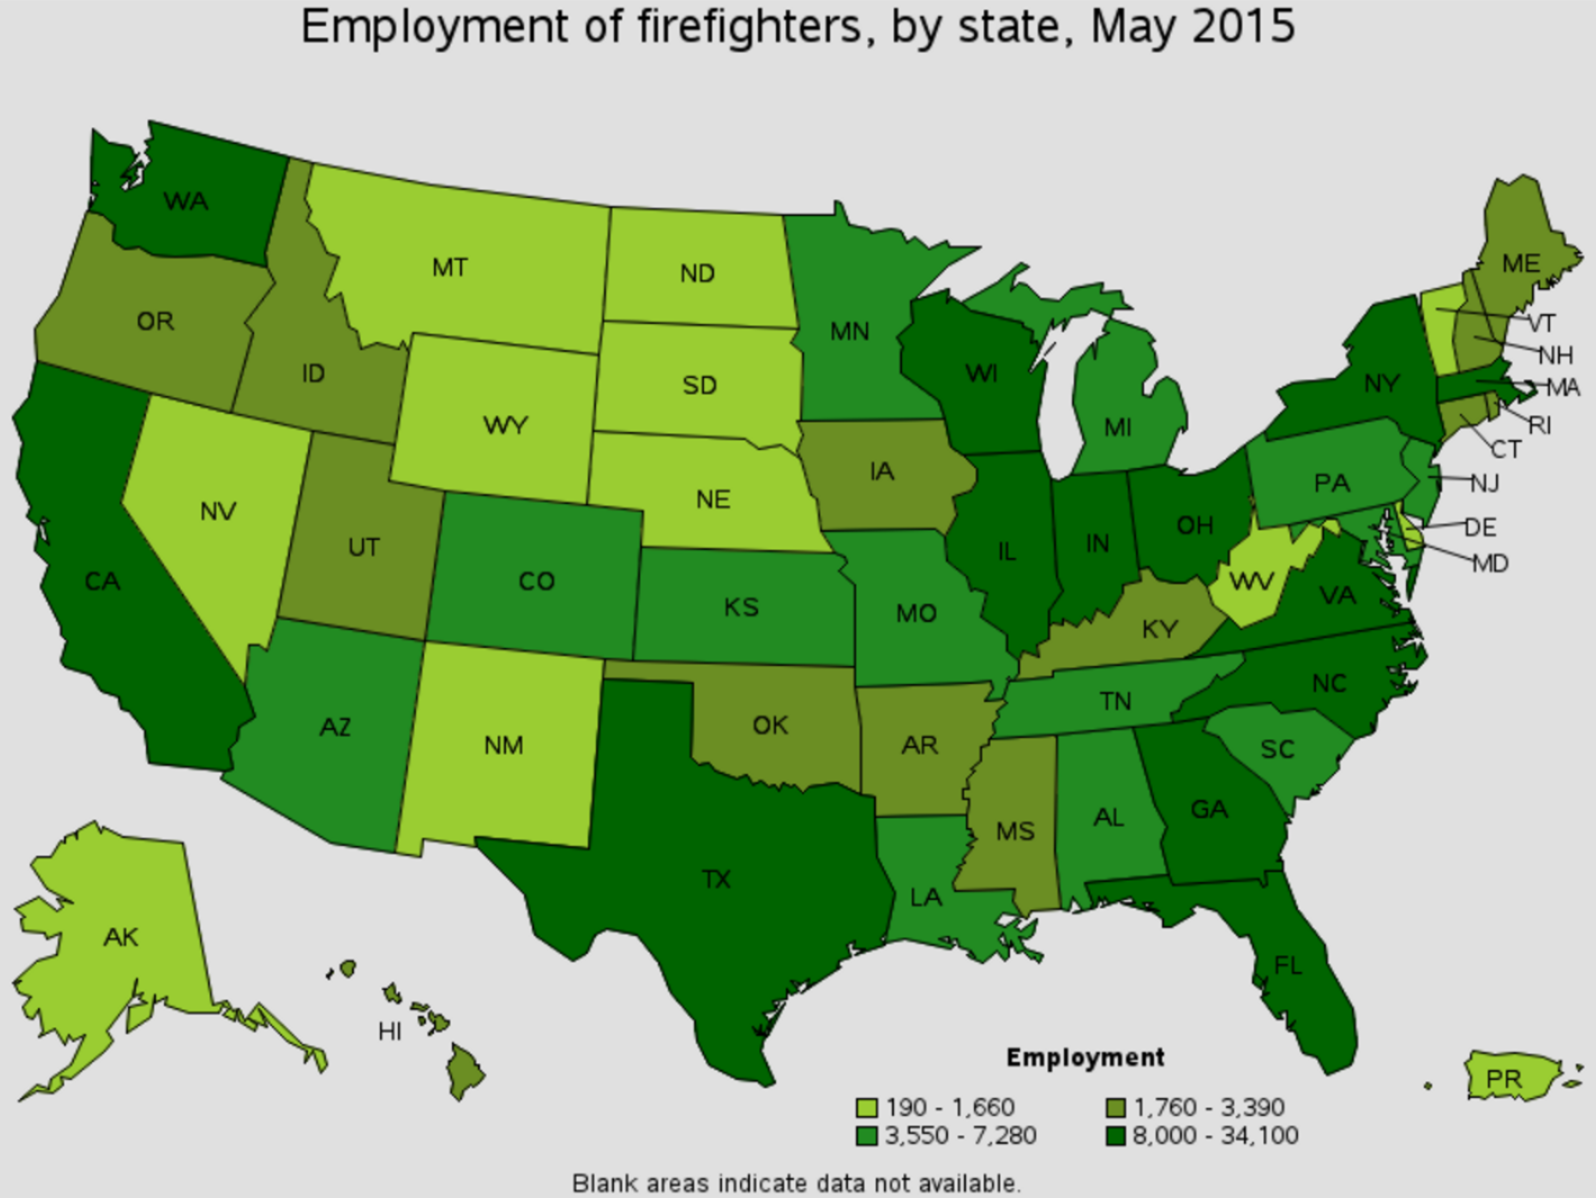 firefighter job outlook by state Lowell Massachusetts